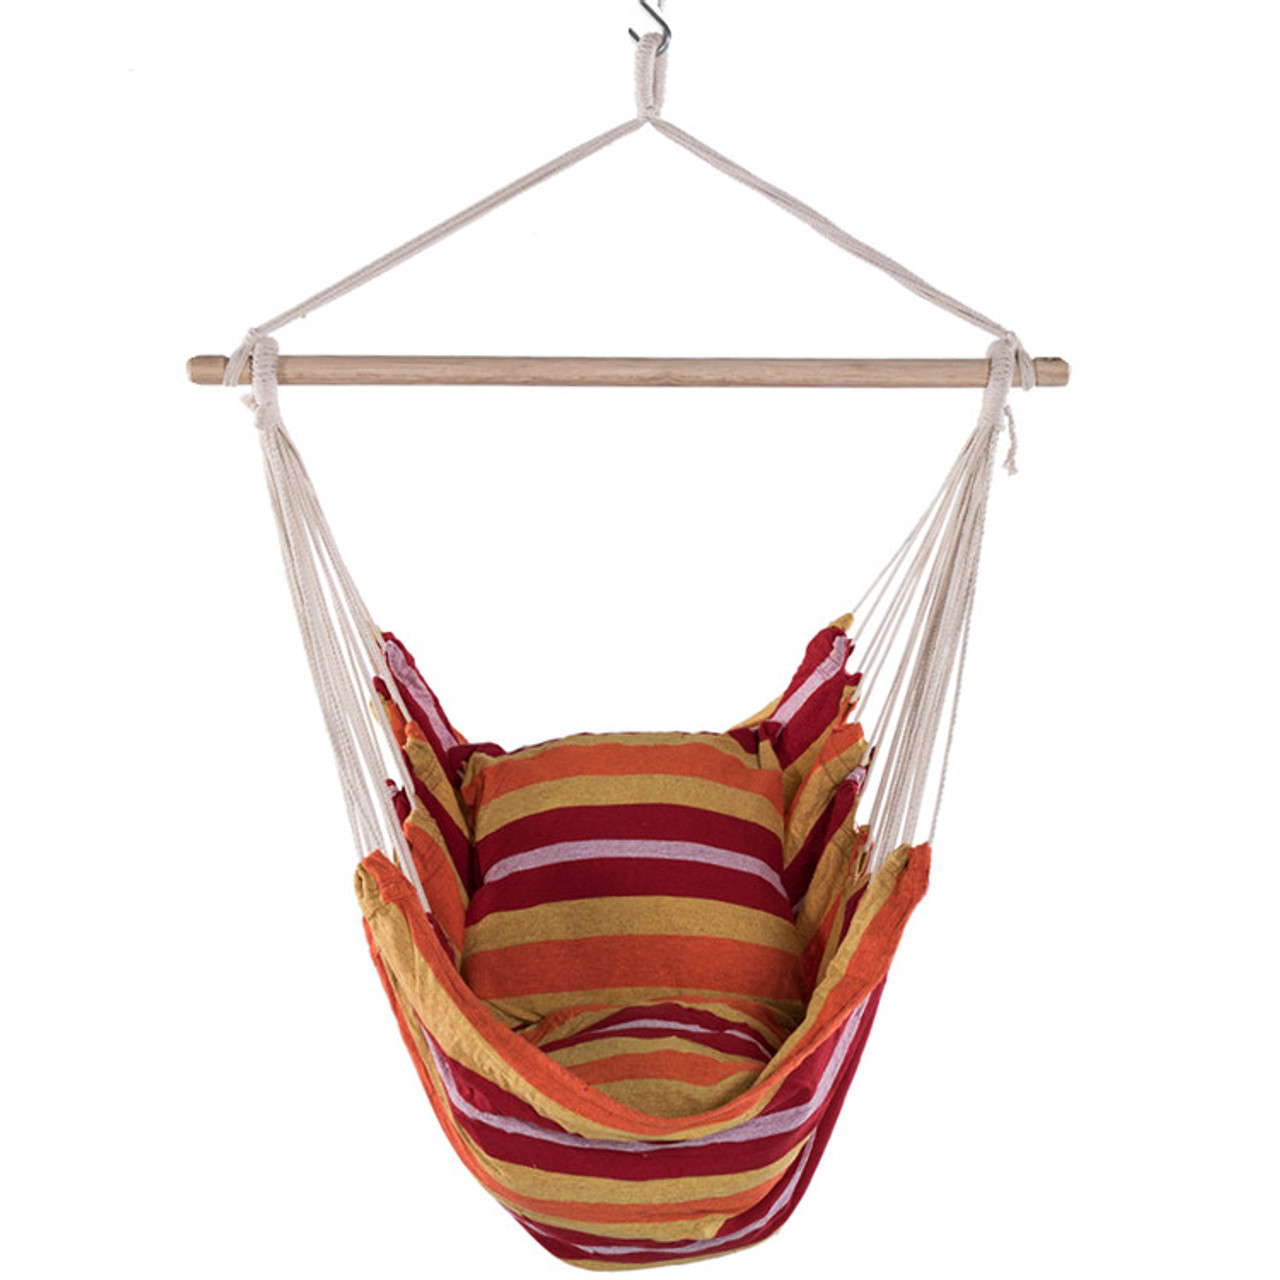 Lazy Daze Hammocks Hanging Rope Hammock Chair Swing Seat With 2 Seat  Cushions, Weight Capacity